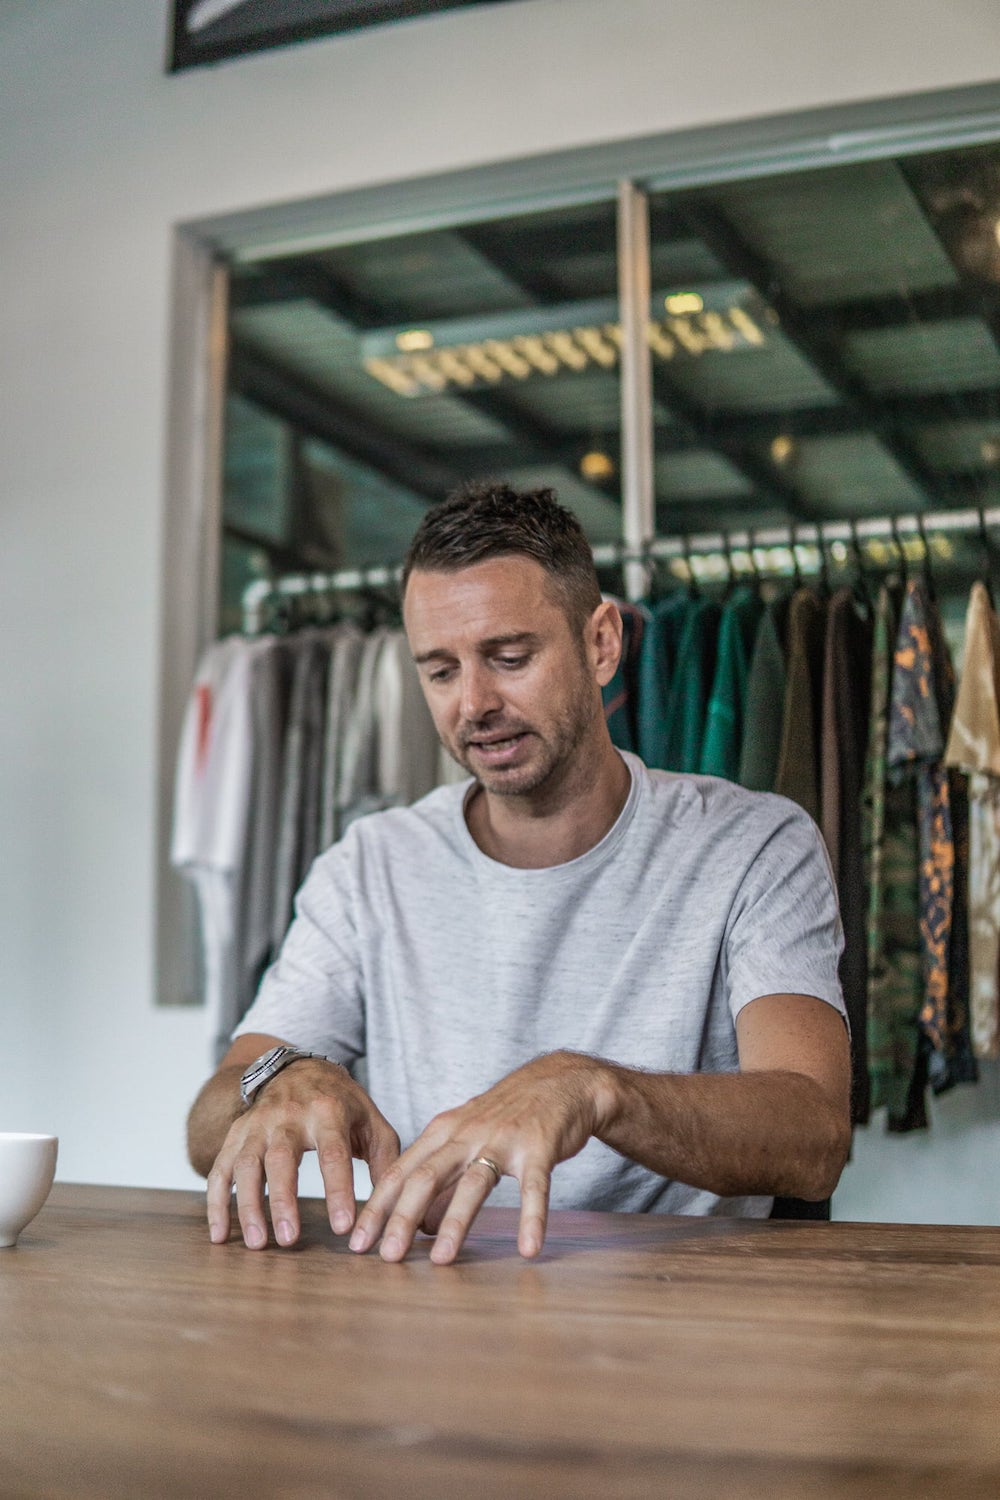 How I Manage: Un-Available's Paul Norriss On Producing Garments For Streetwear Brands-4